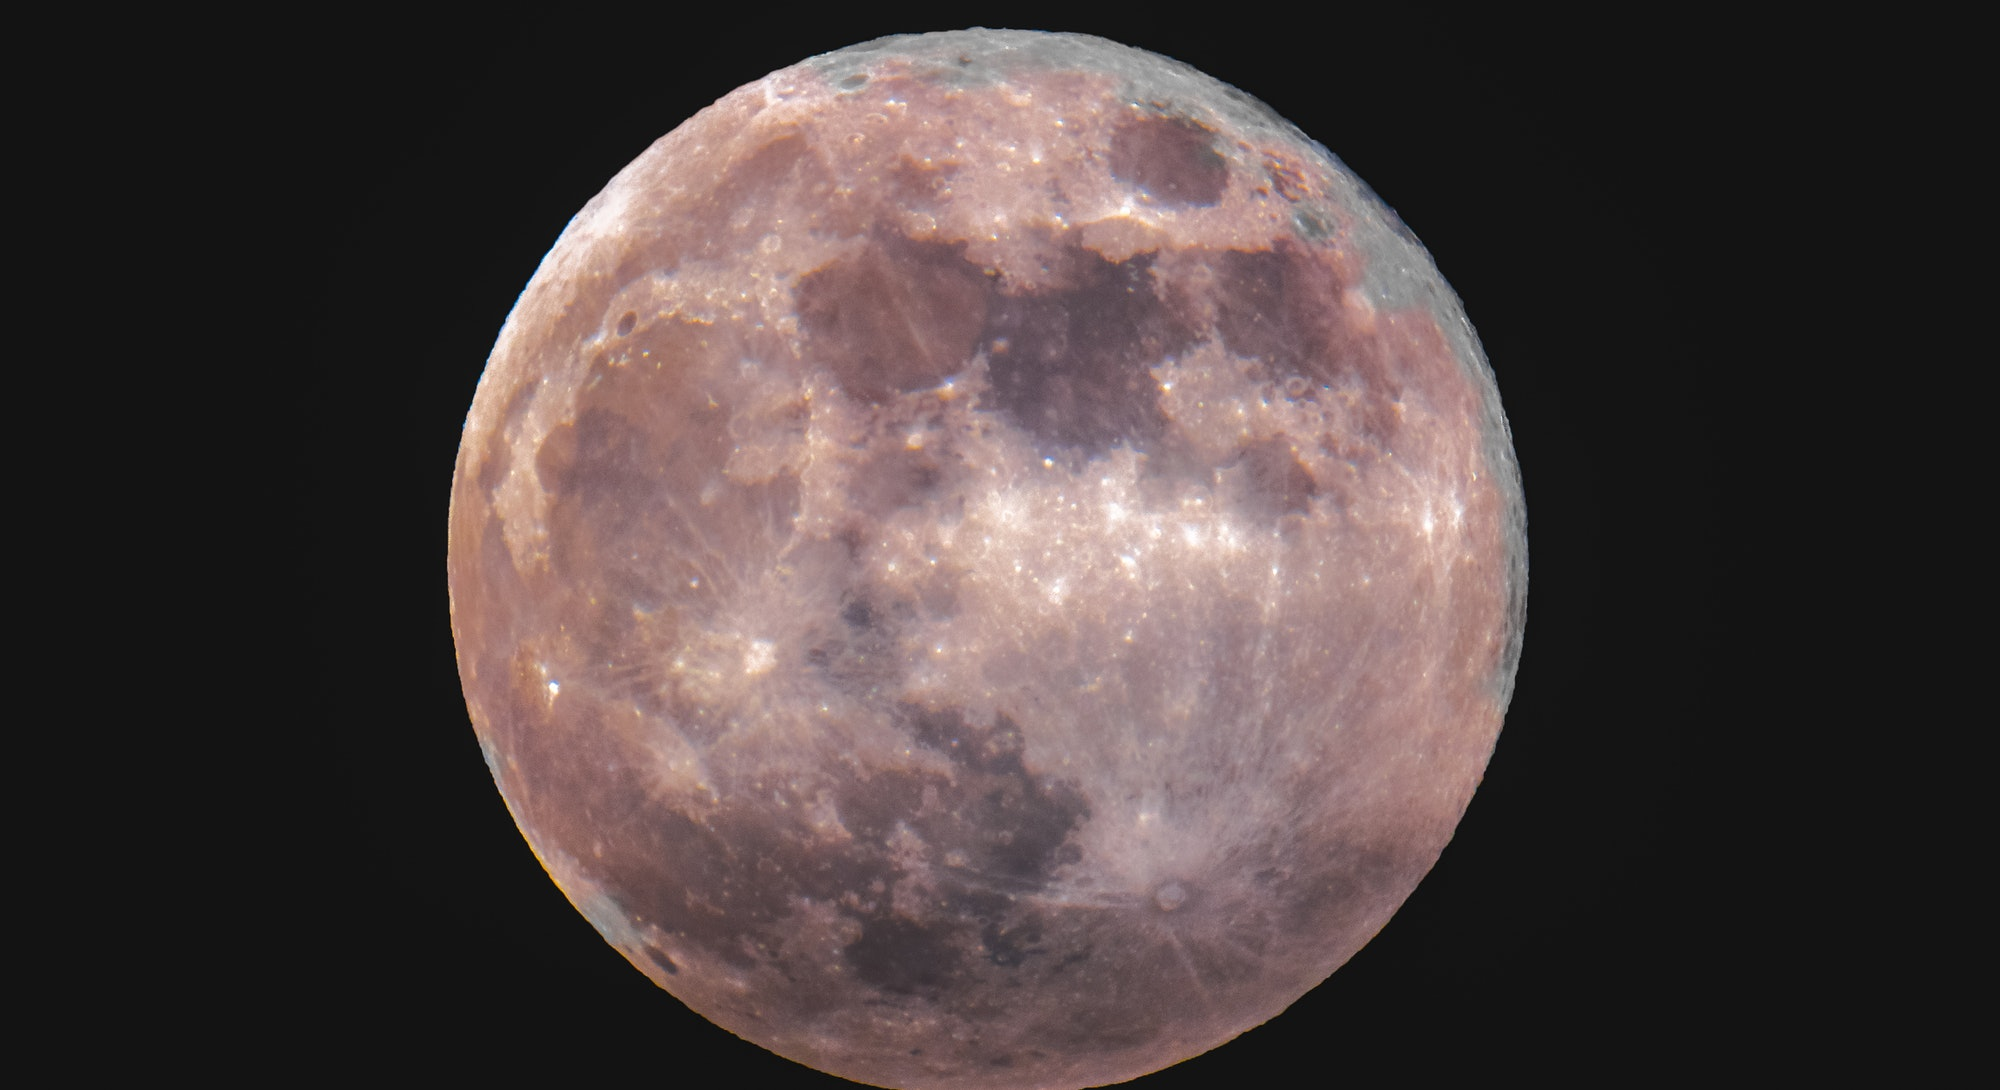 The June 2021 full moon is the first lunation of the summer.